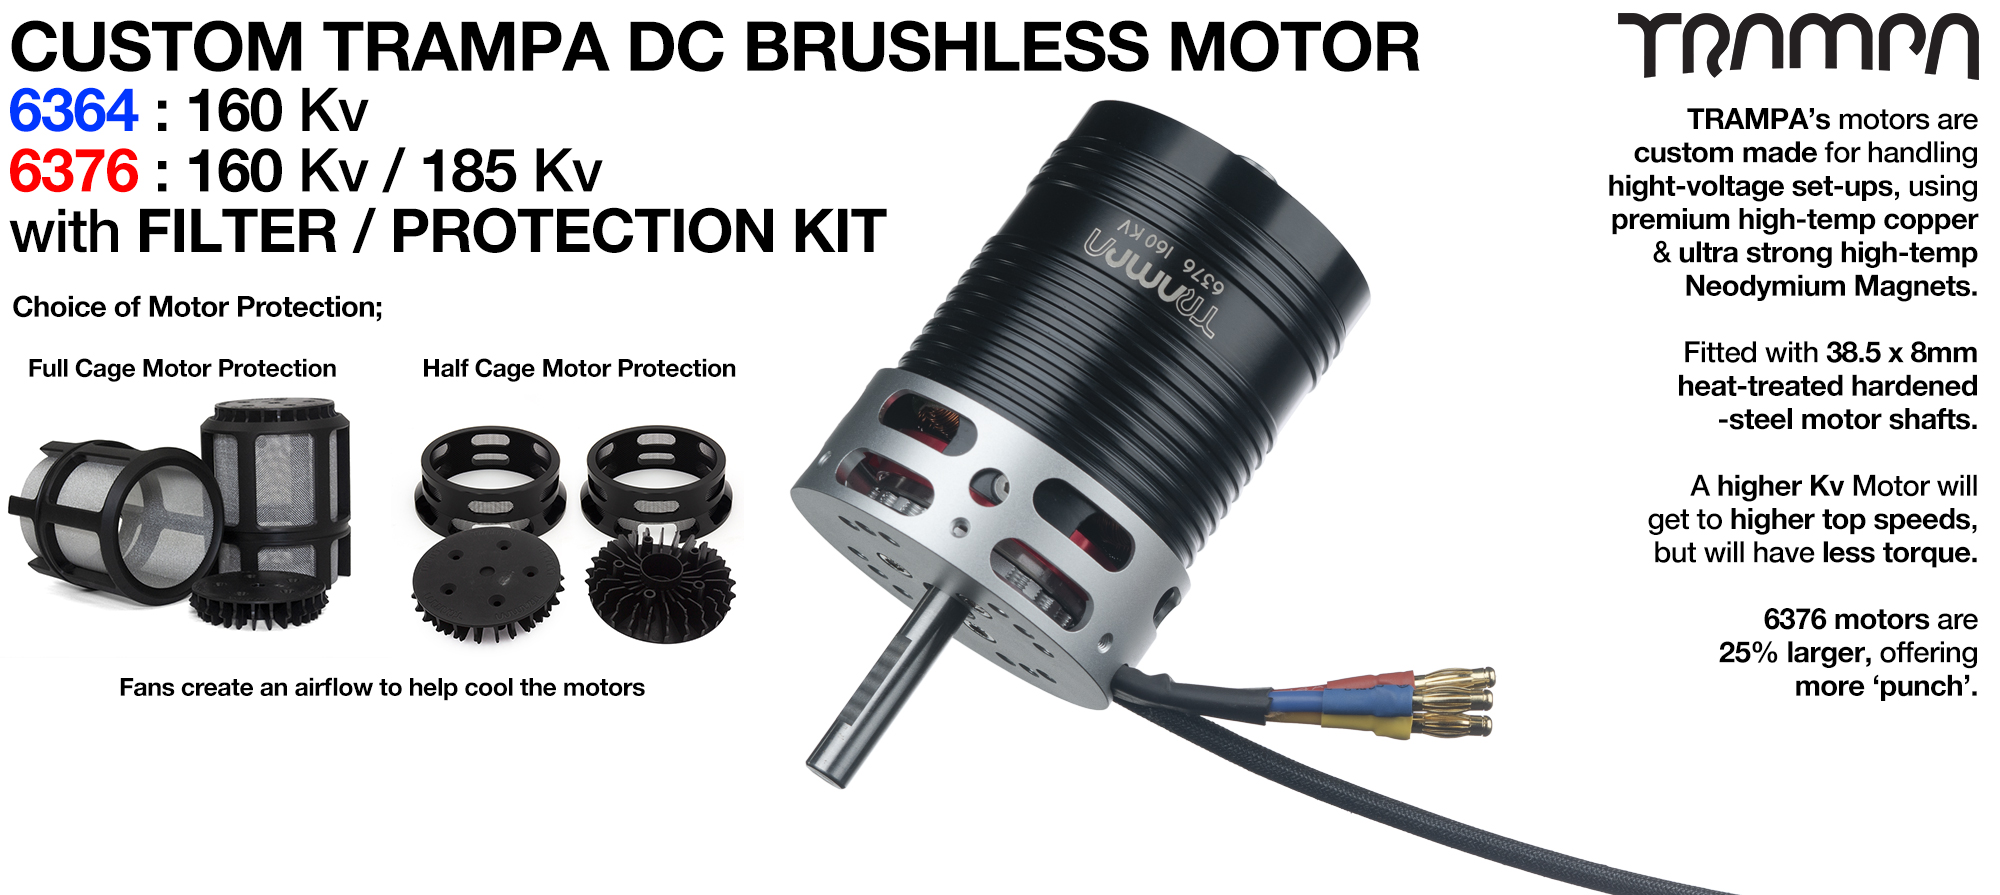 1x Custom TRAMPA DC Motor with Filters